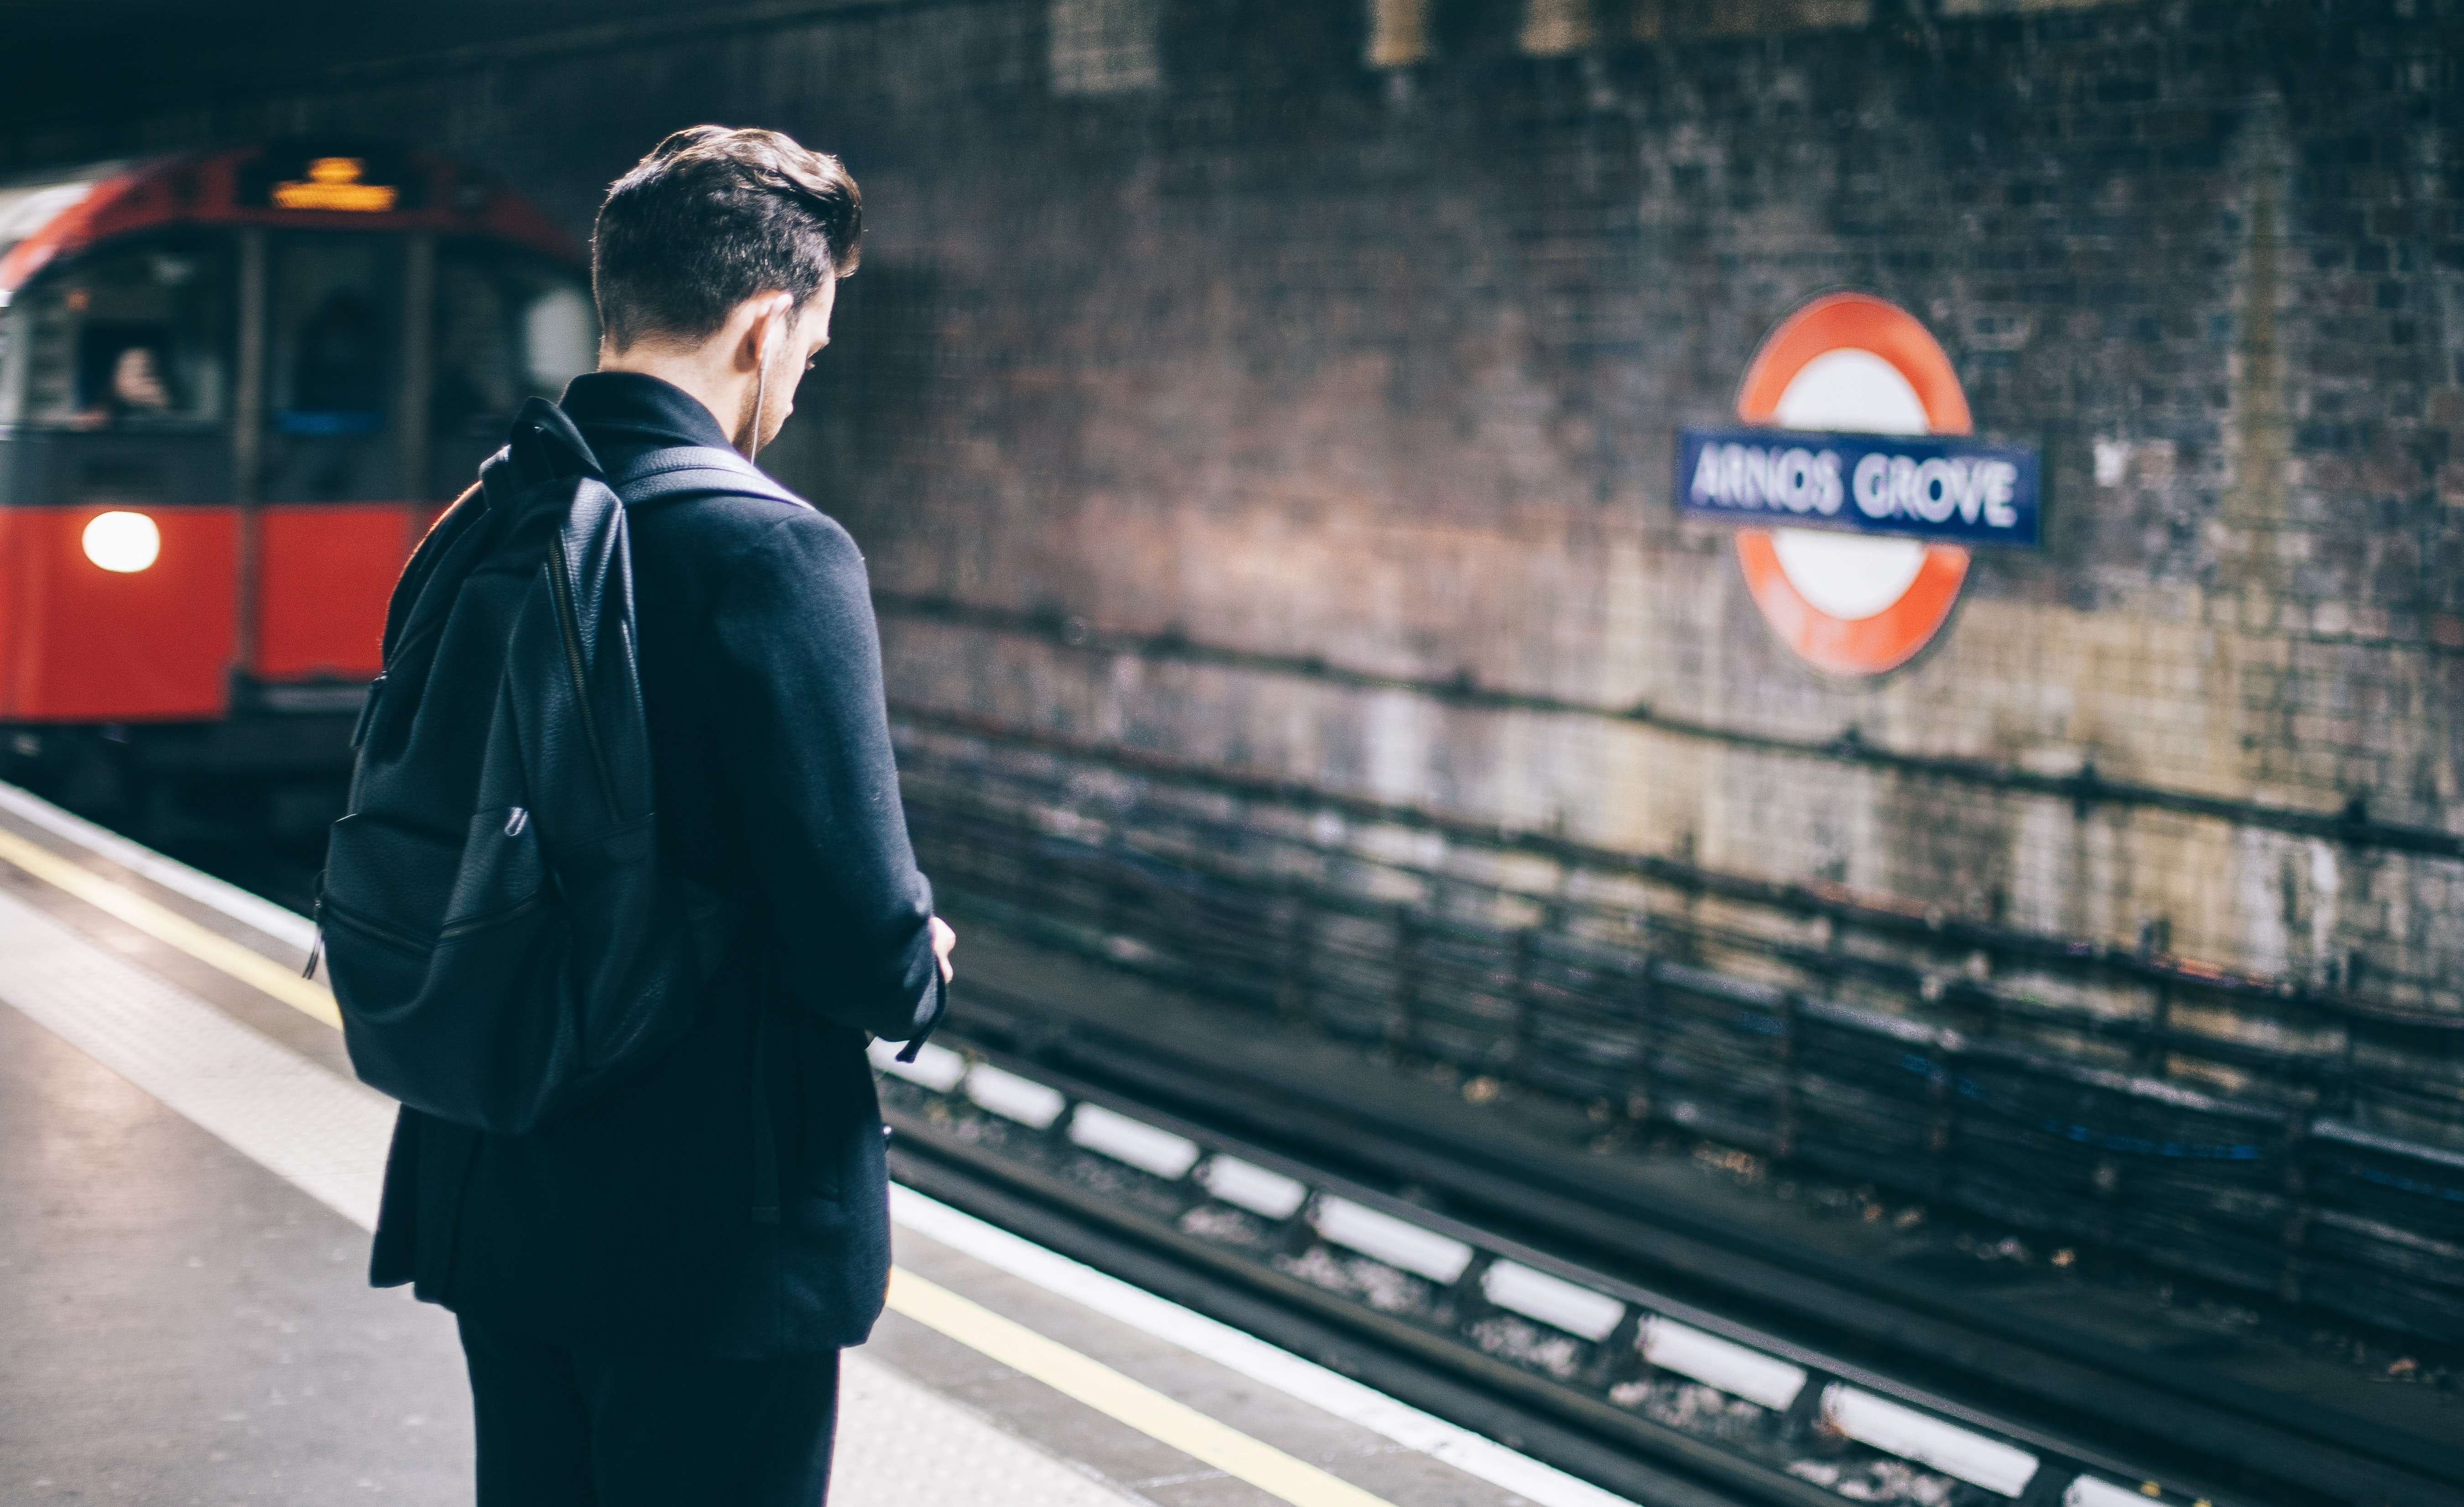 A person waits on a subway platform for an approaching train in Arnos Grove